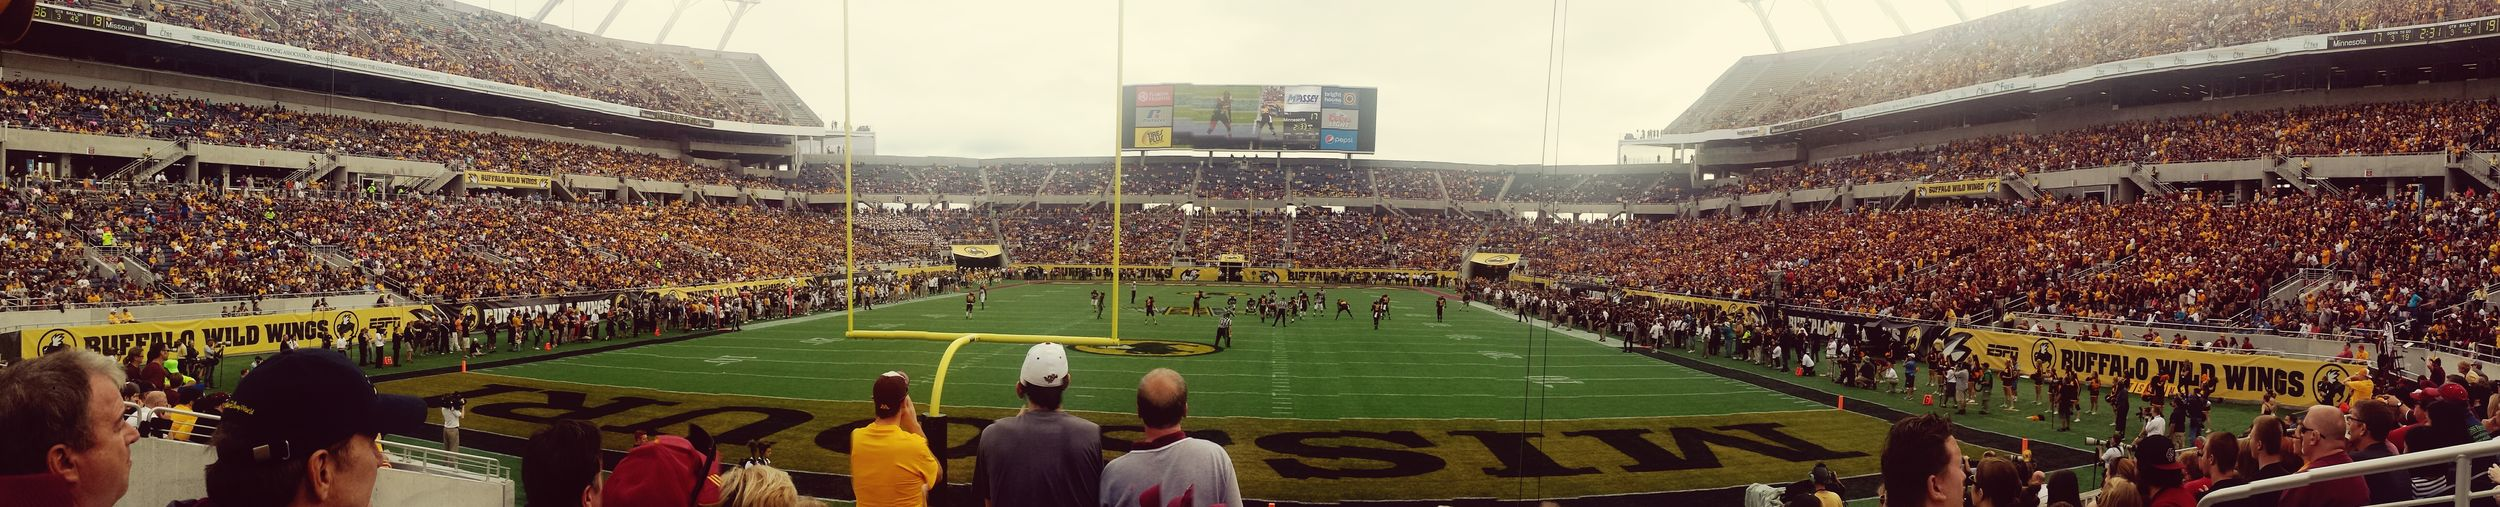 Citrus Bowl Minnesota Gophers